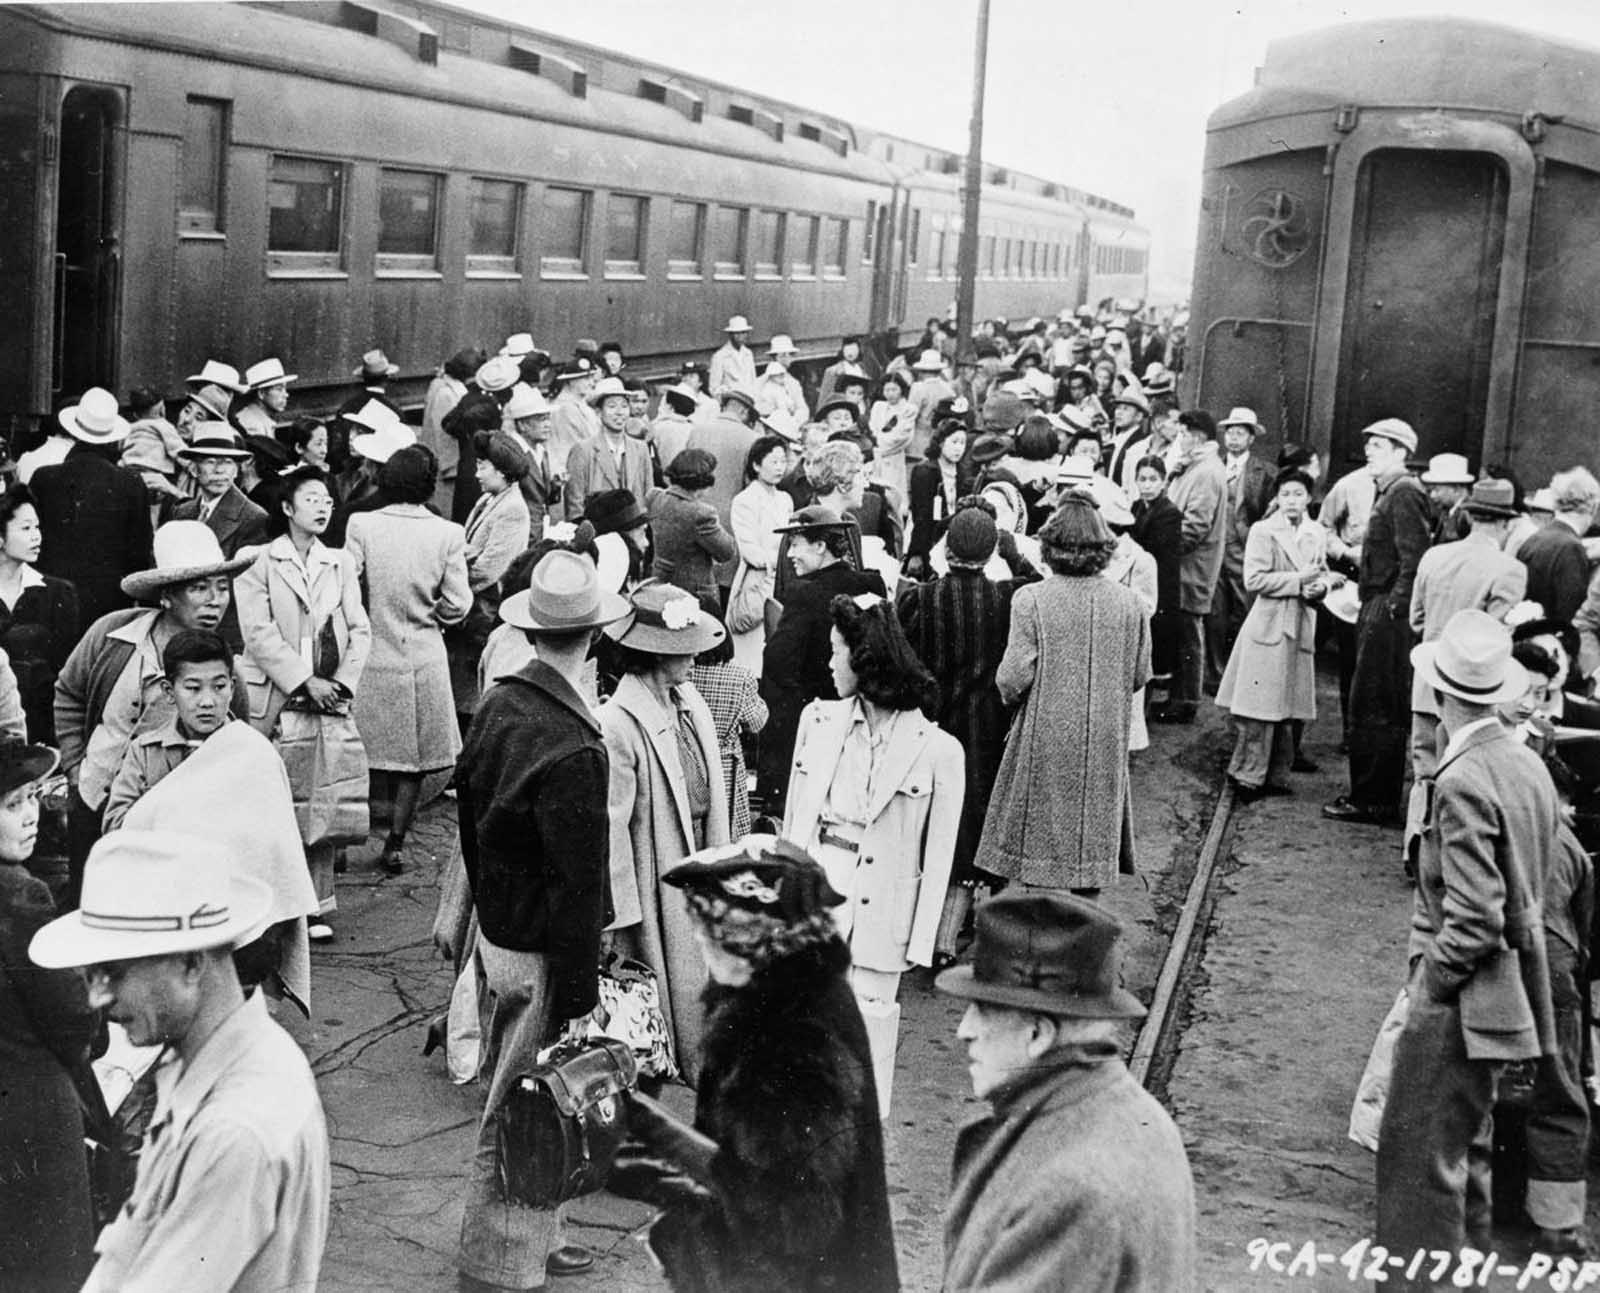 Evacuees assemble at a Los Angeles railroad station.